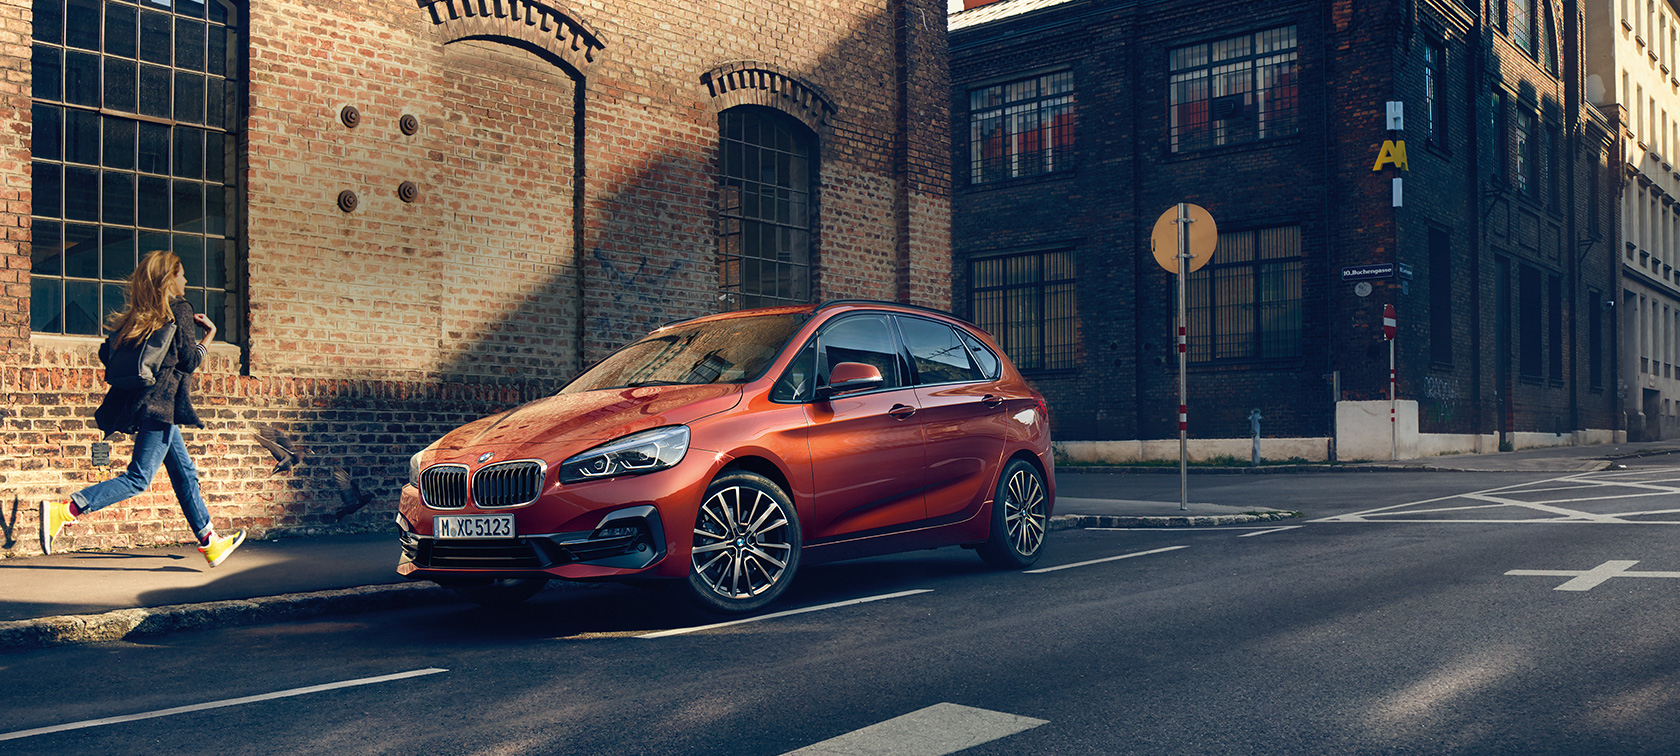 BMW 2 Series Active Tourer F45 Sunset Orange metallic three-quarter front view parking on the road